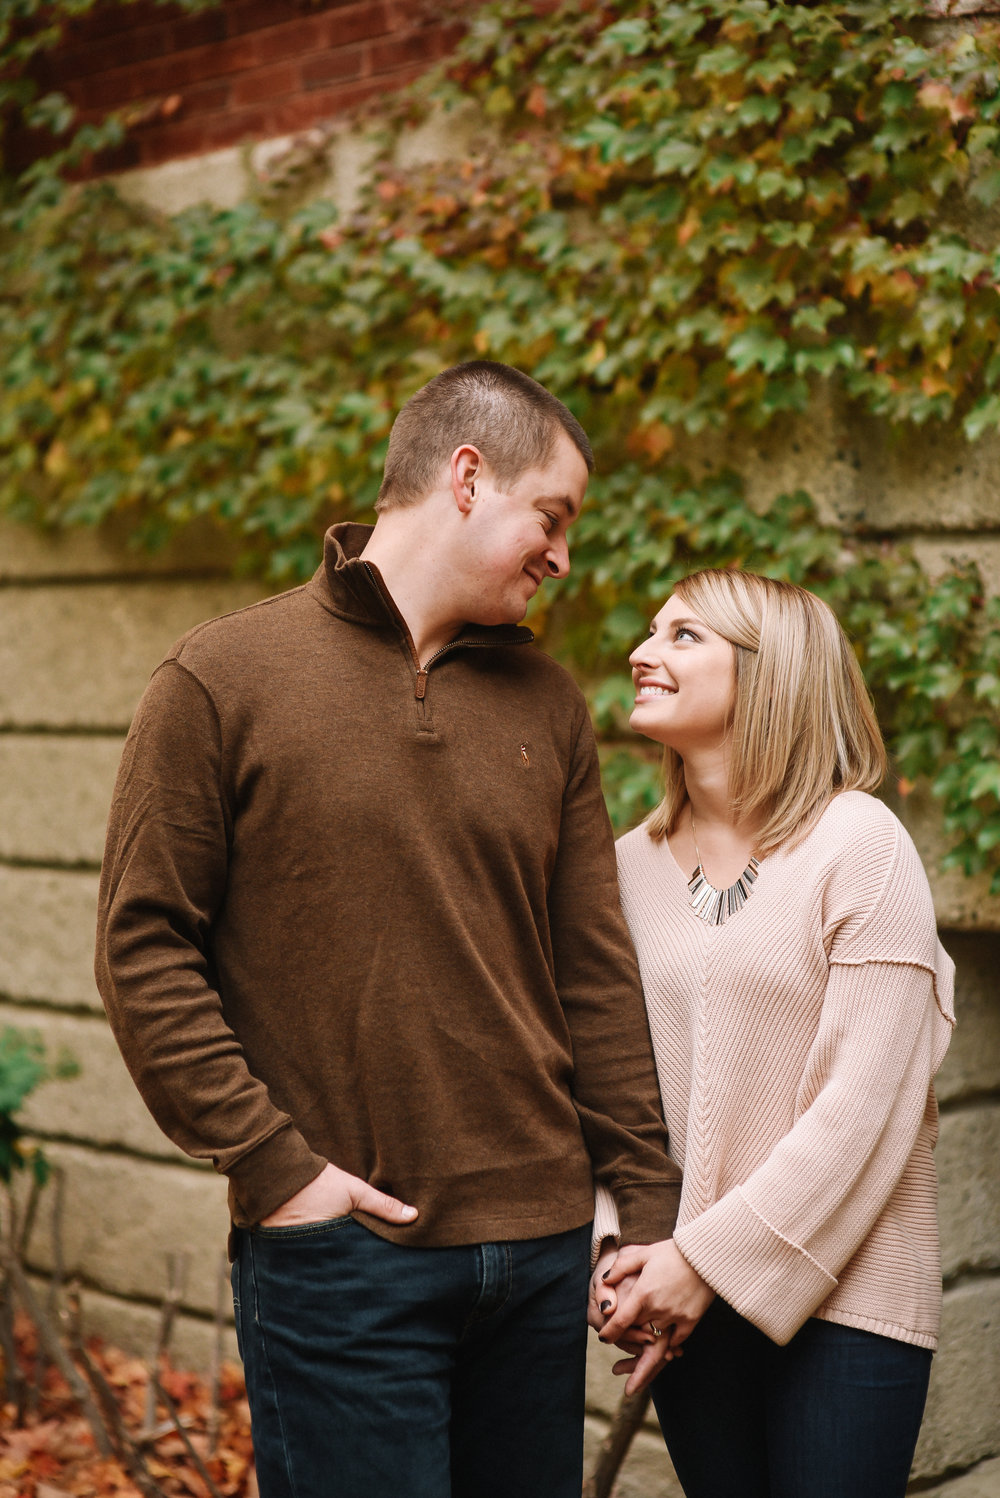 Law_Quad_Ann_Arbor_Engagement_Photos-12.jpg